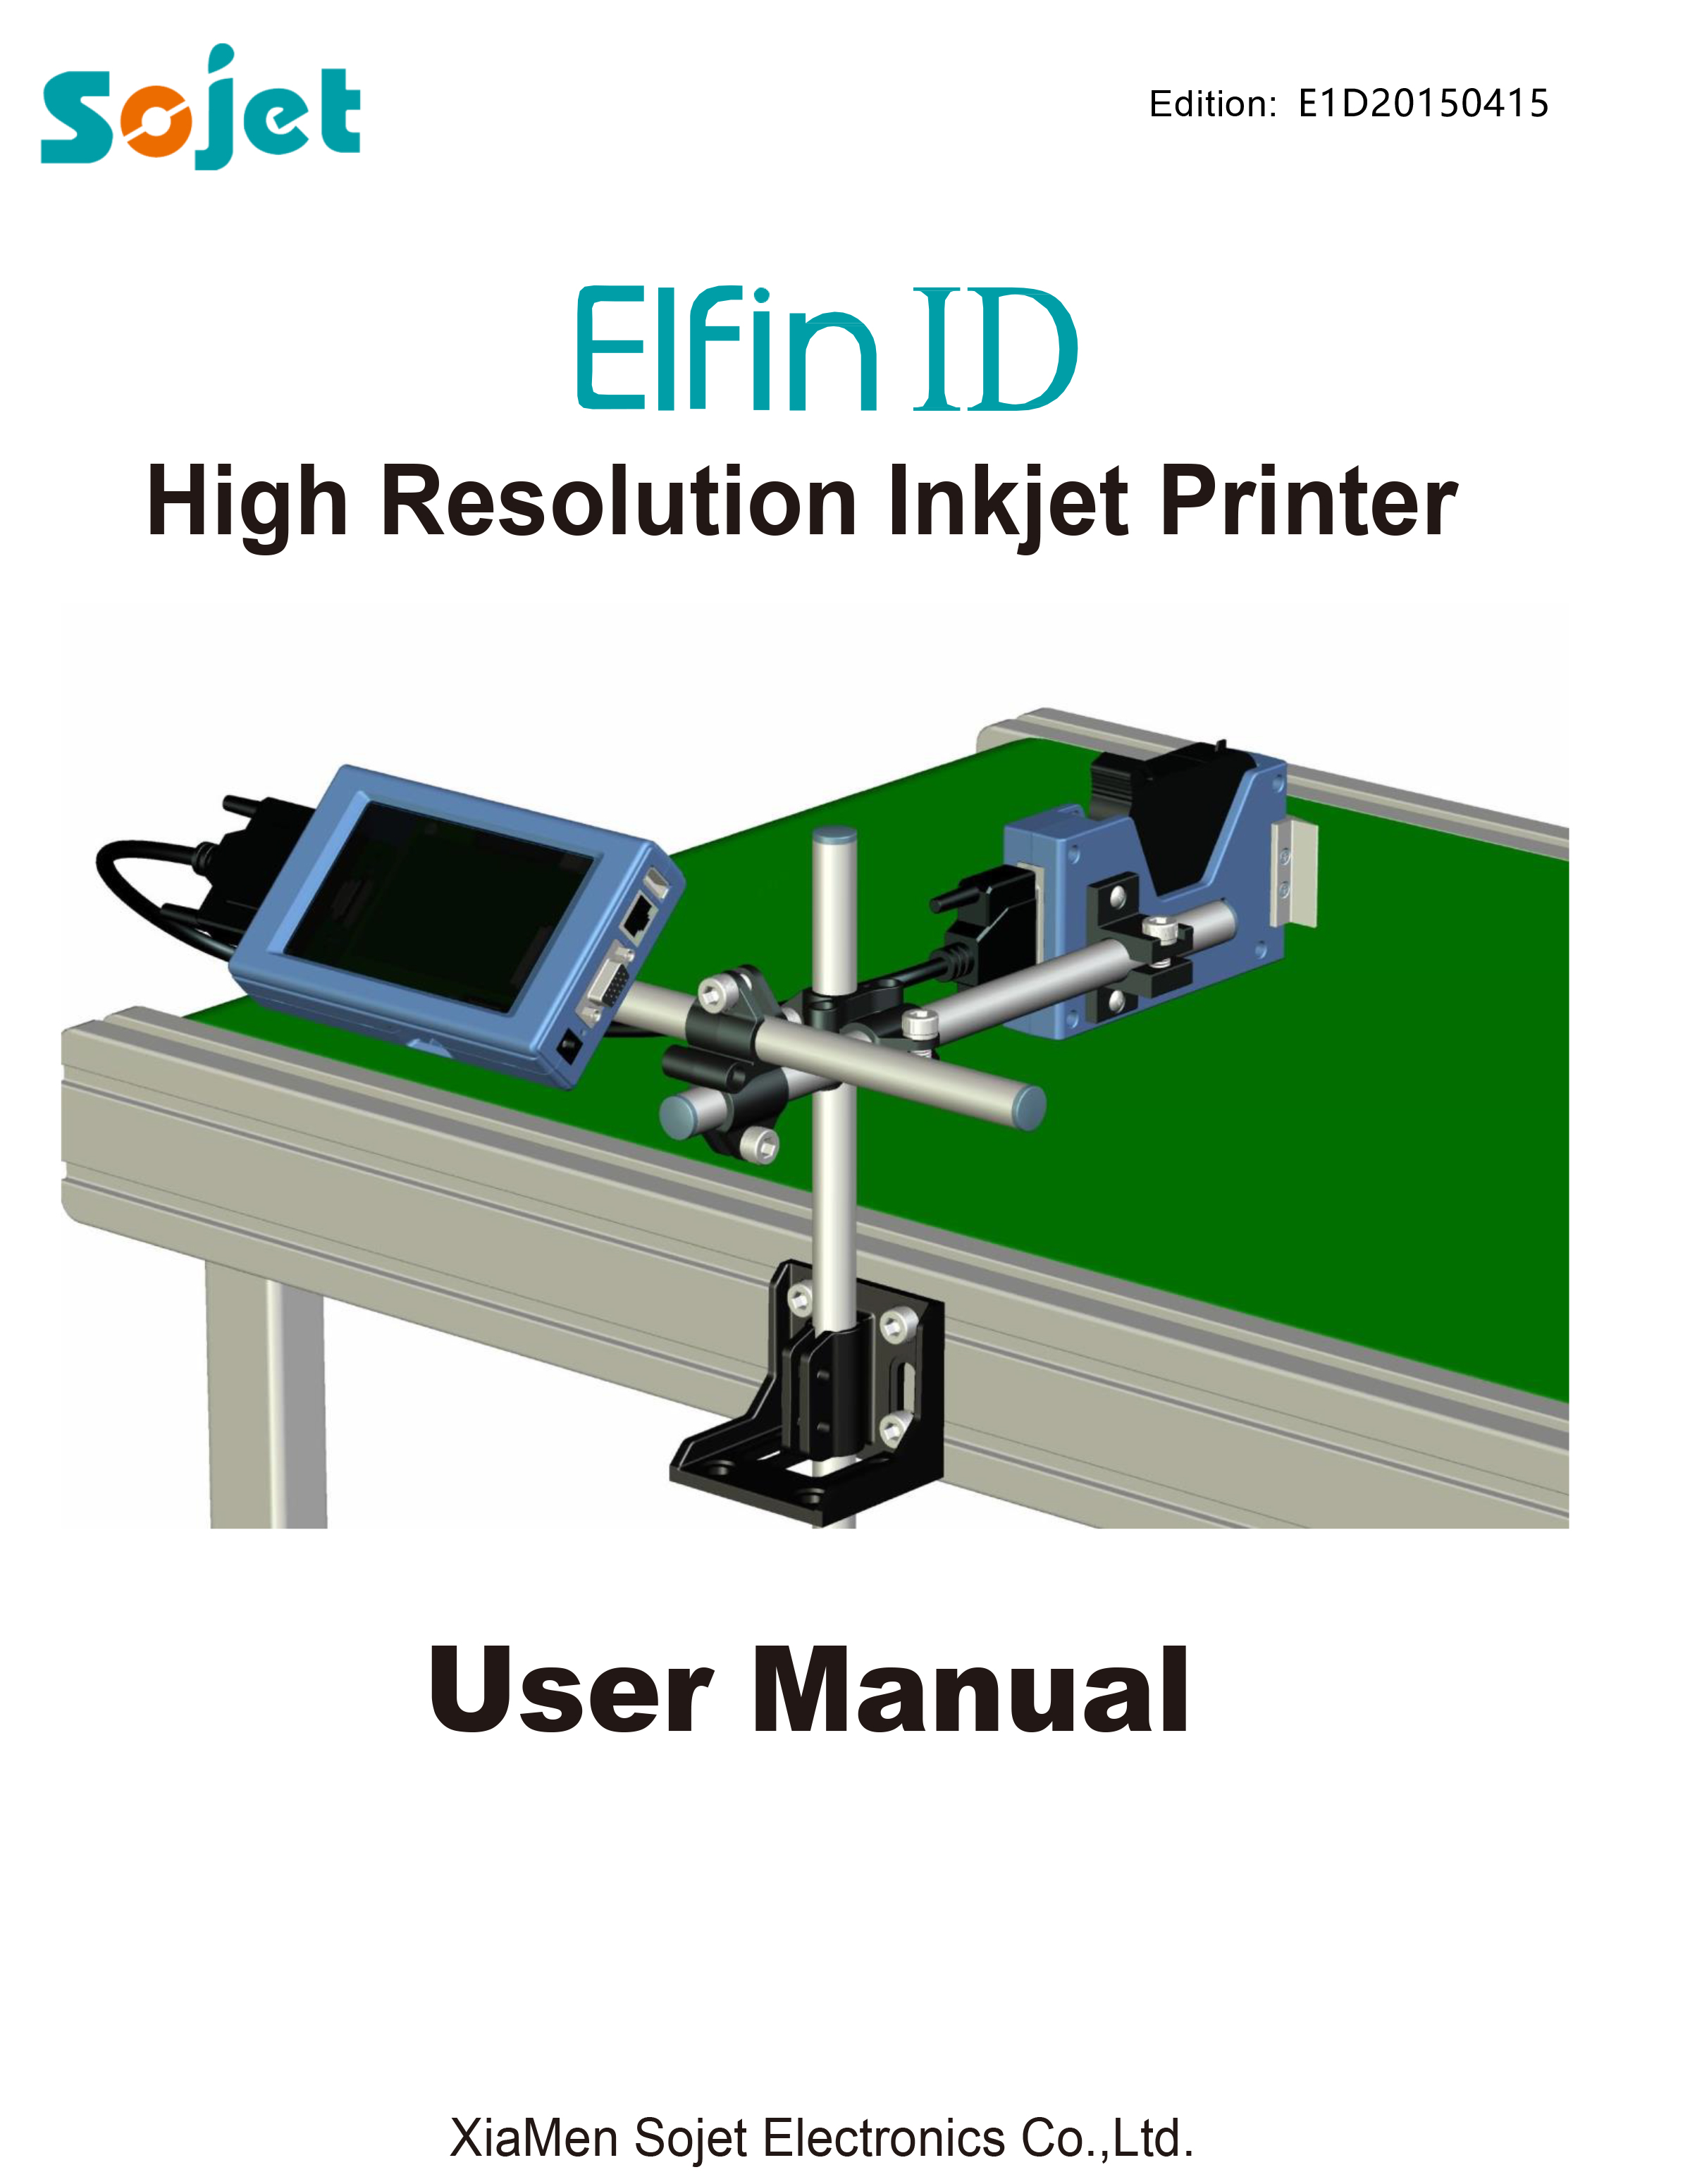 Elfin 1D User Manual E1D20150415 1 - Product Manuals